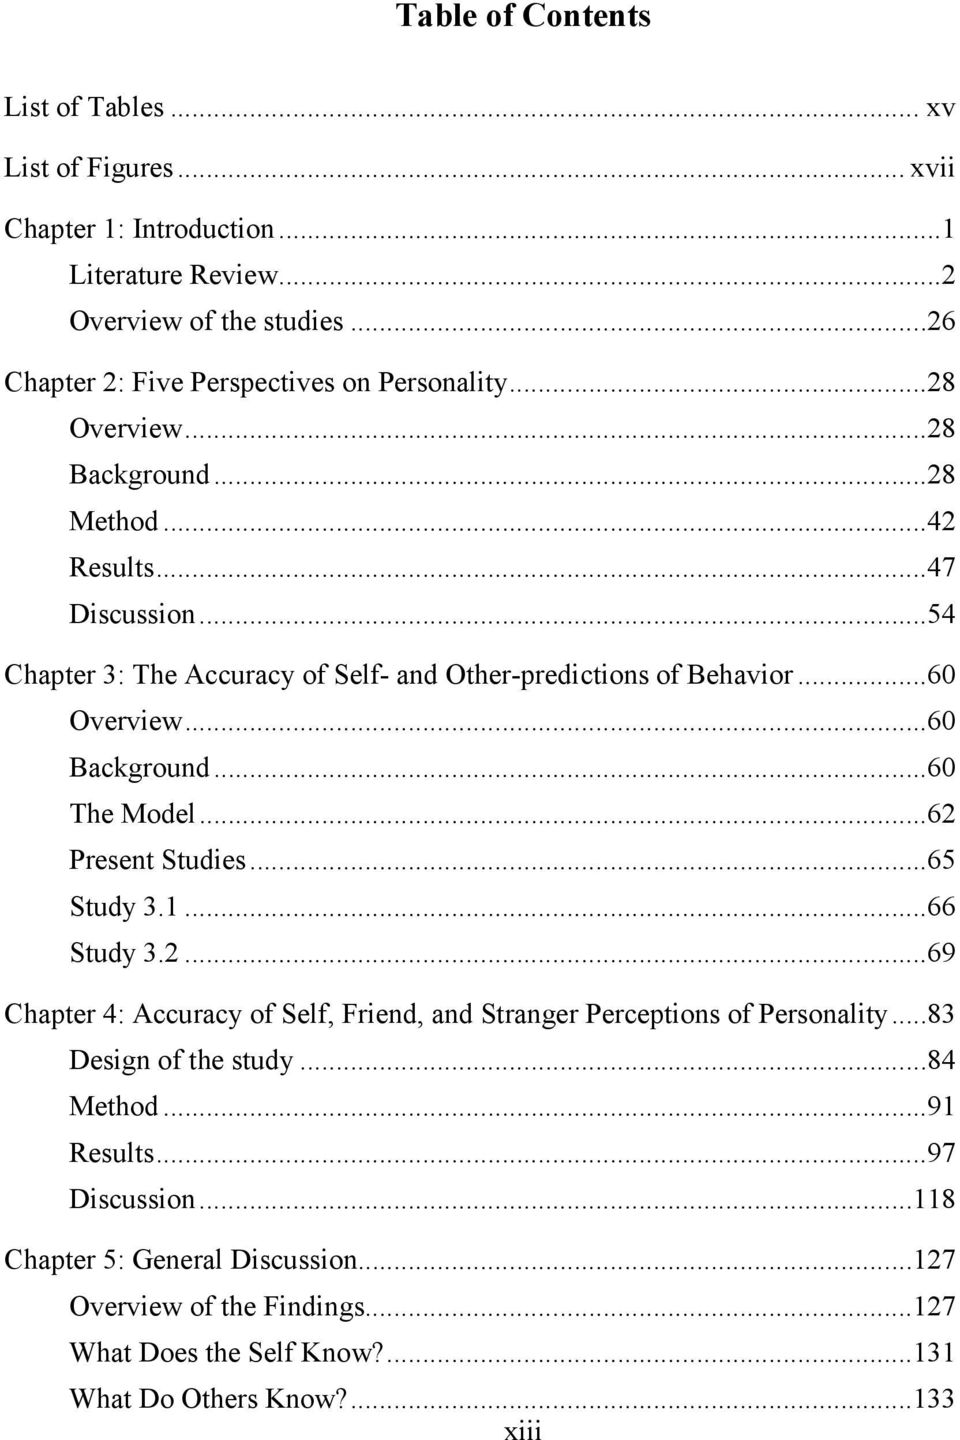 ..54 Chapter 3: The Accuracy of Self- and Other-predictions of Behavior...60 Overview...60 Background...60 The Model...62